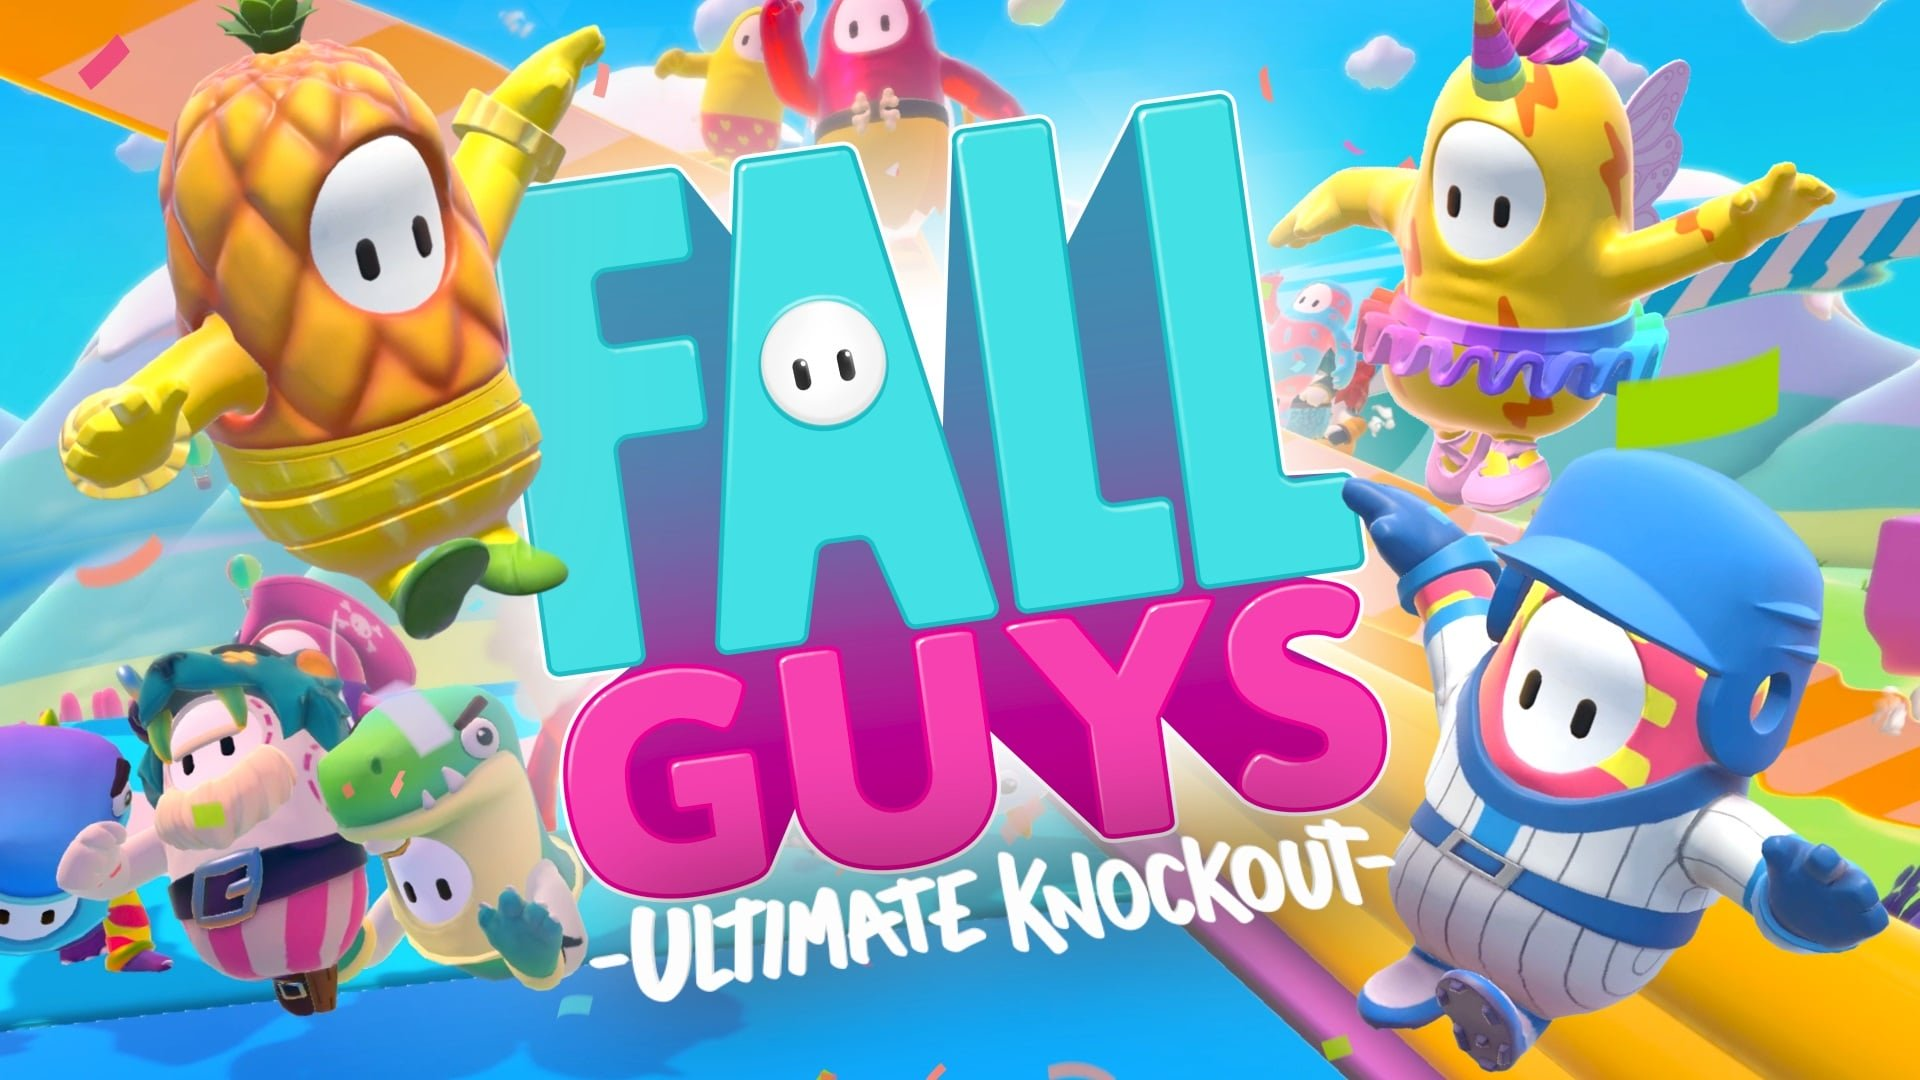 fall guys ultimate knockout video game wallpaper 71438